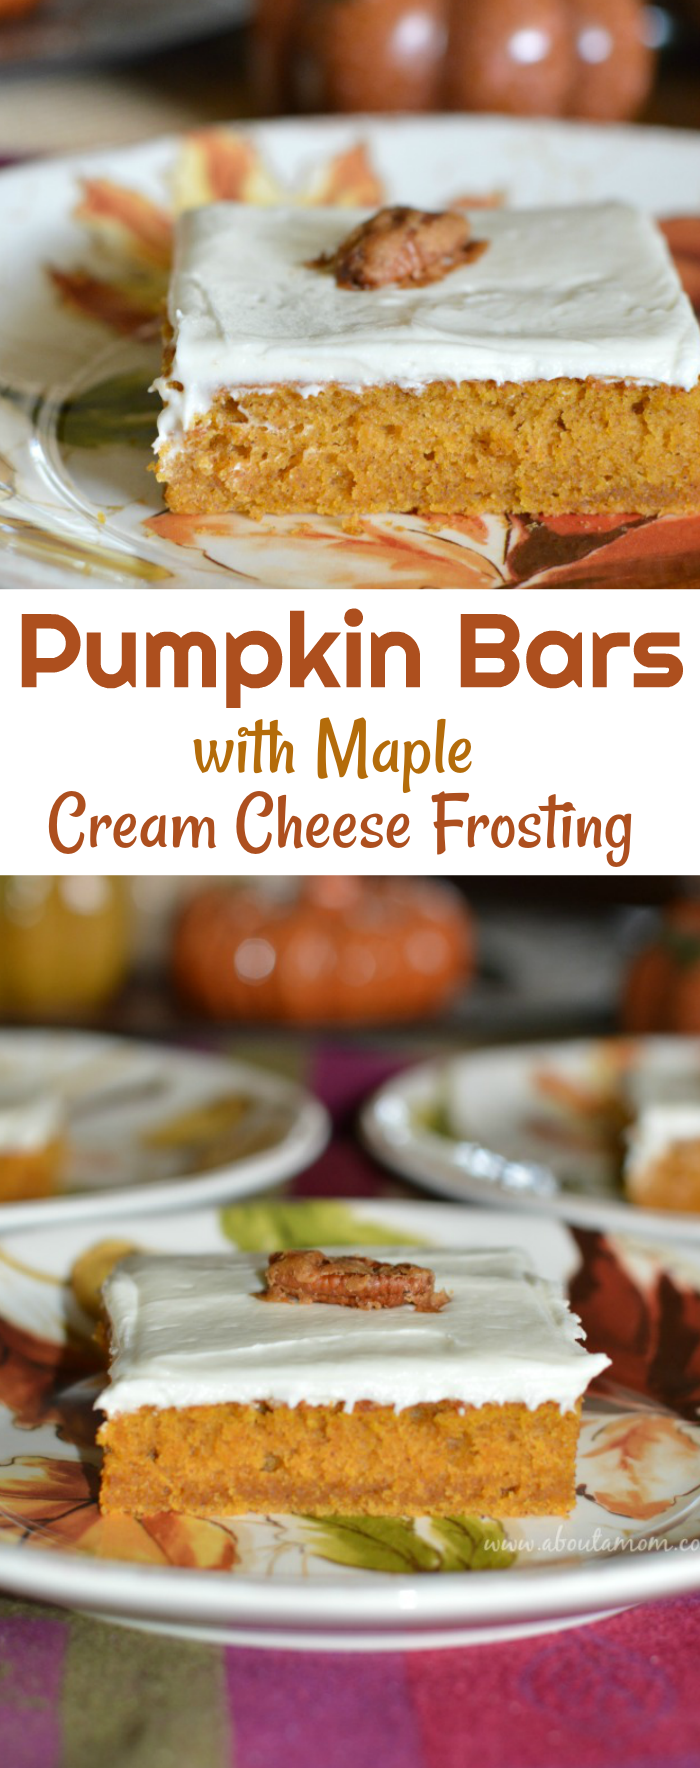 Enjoy the flavors of the fall season with these Pumpkin Bars topped with maple cream cheese frosting. Candied pecans add a bit of crunch to this flavorful fall dessert.